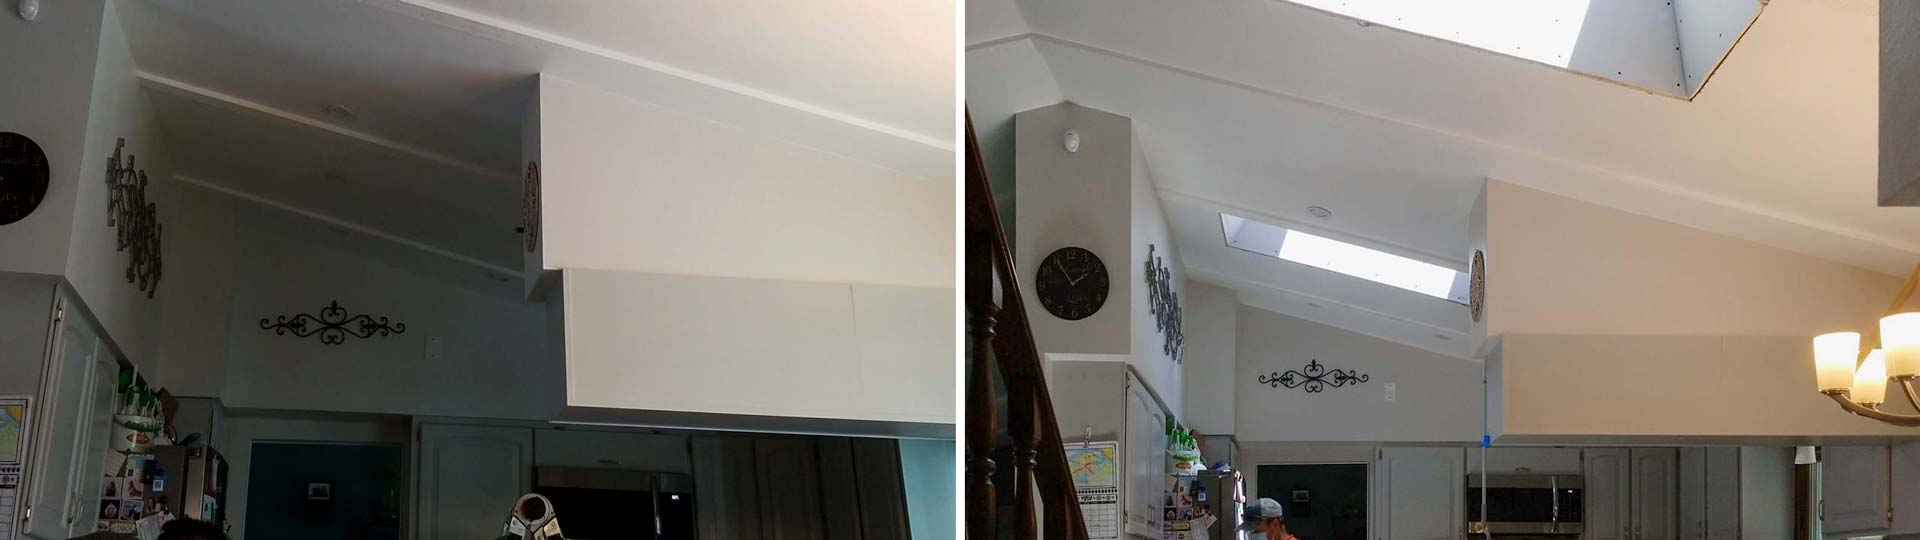 install Velux manual venting skylight 29397-header